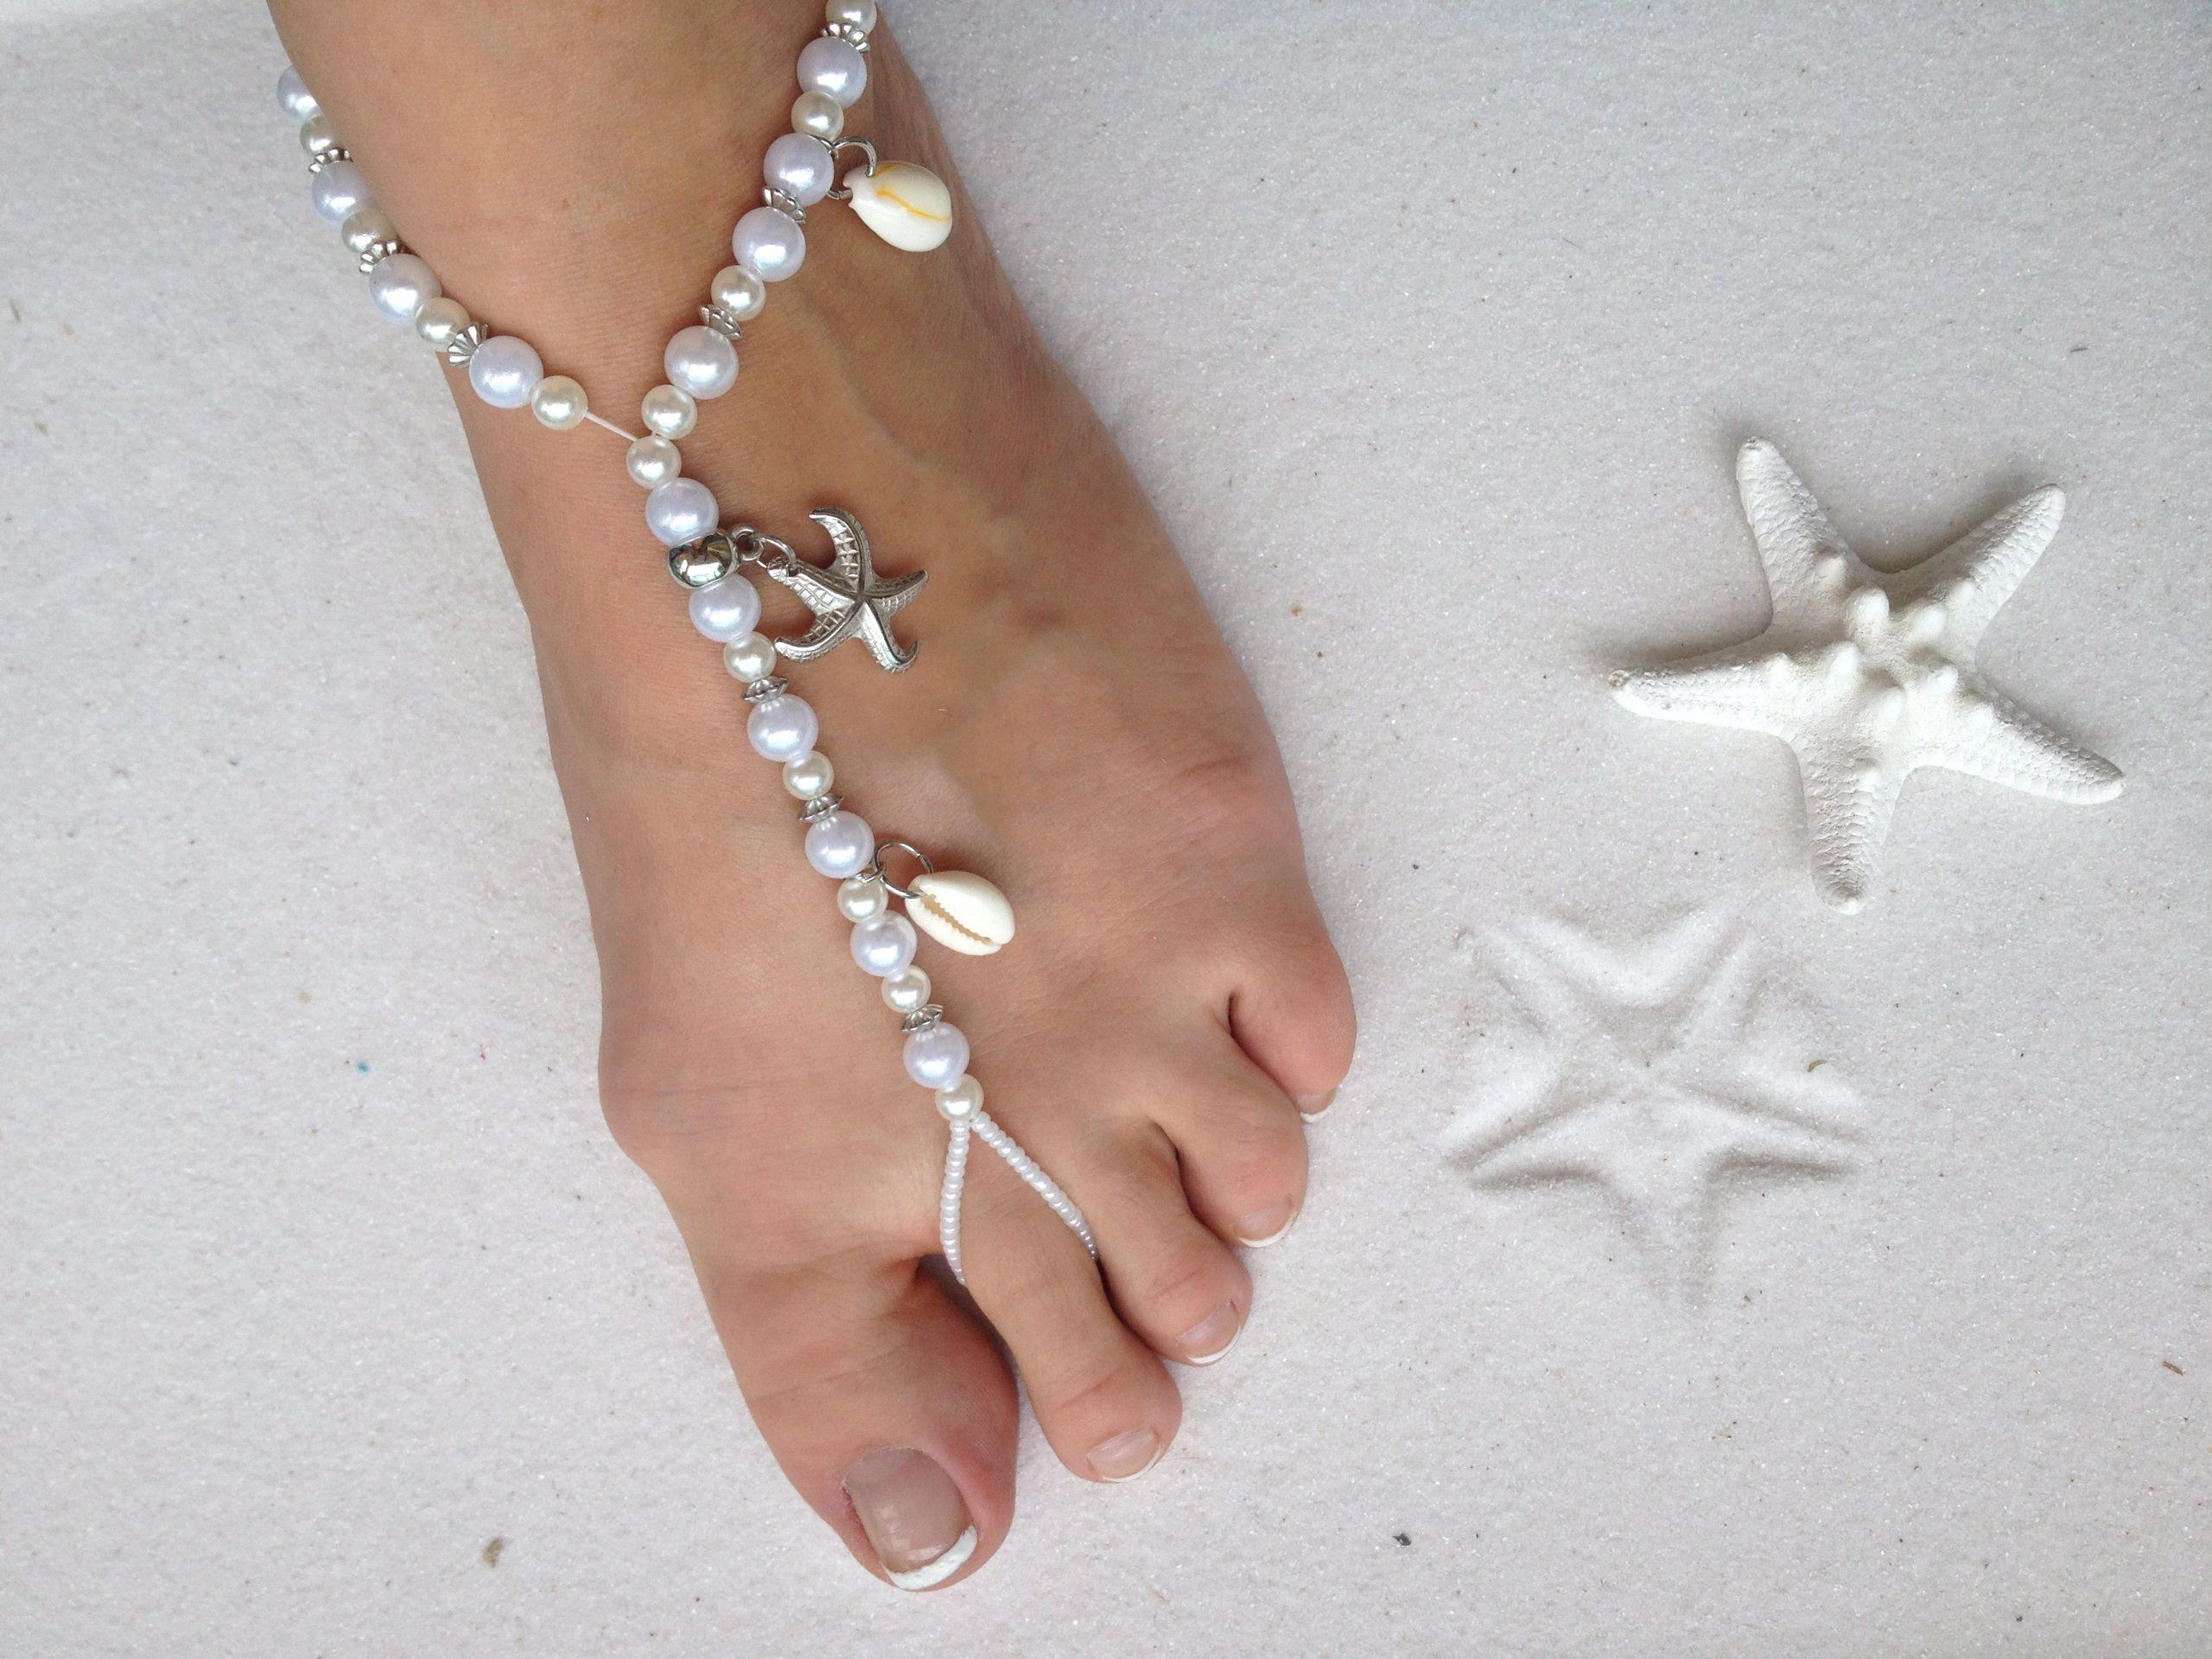 jewelry get design photos inspired wedding mango jewellery bridal ezwed gorgeous anklet anklets